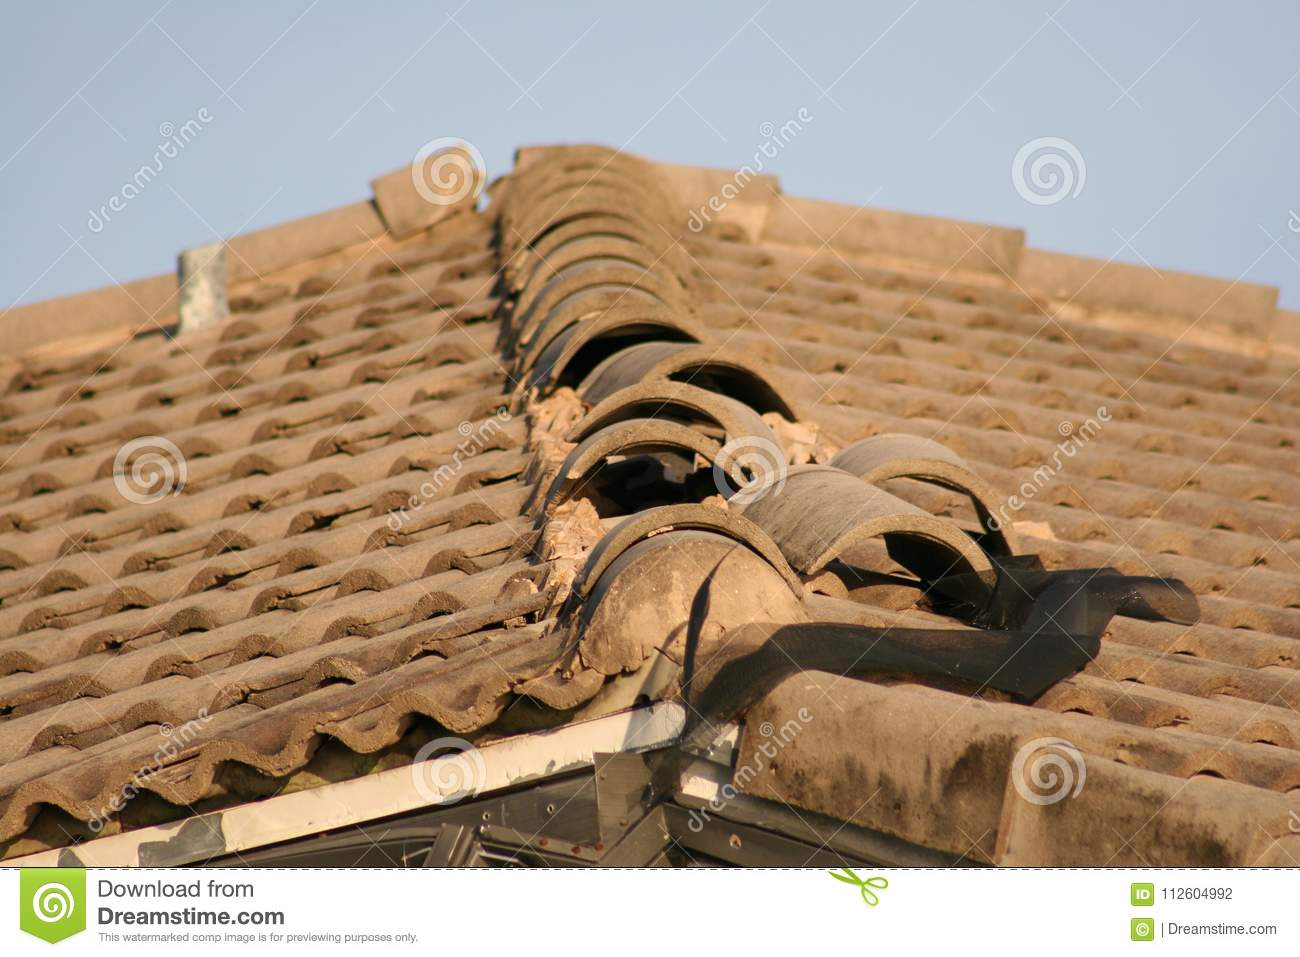 Roof tiles are ripped up from Hurricane winds.